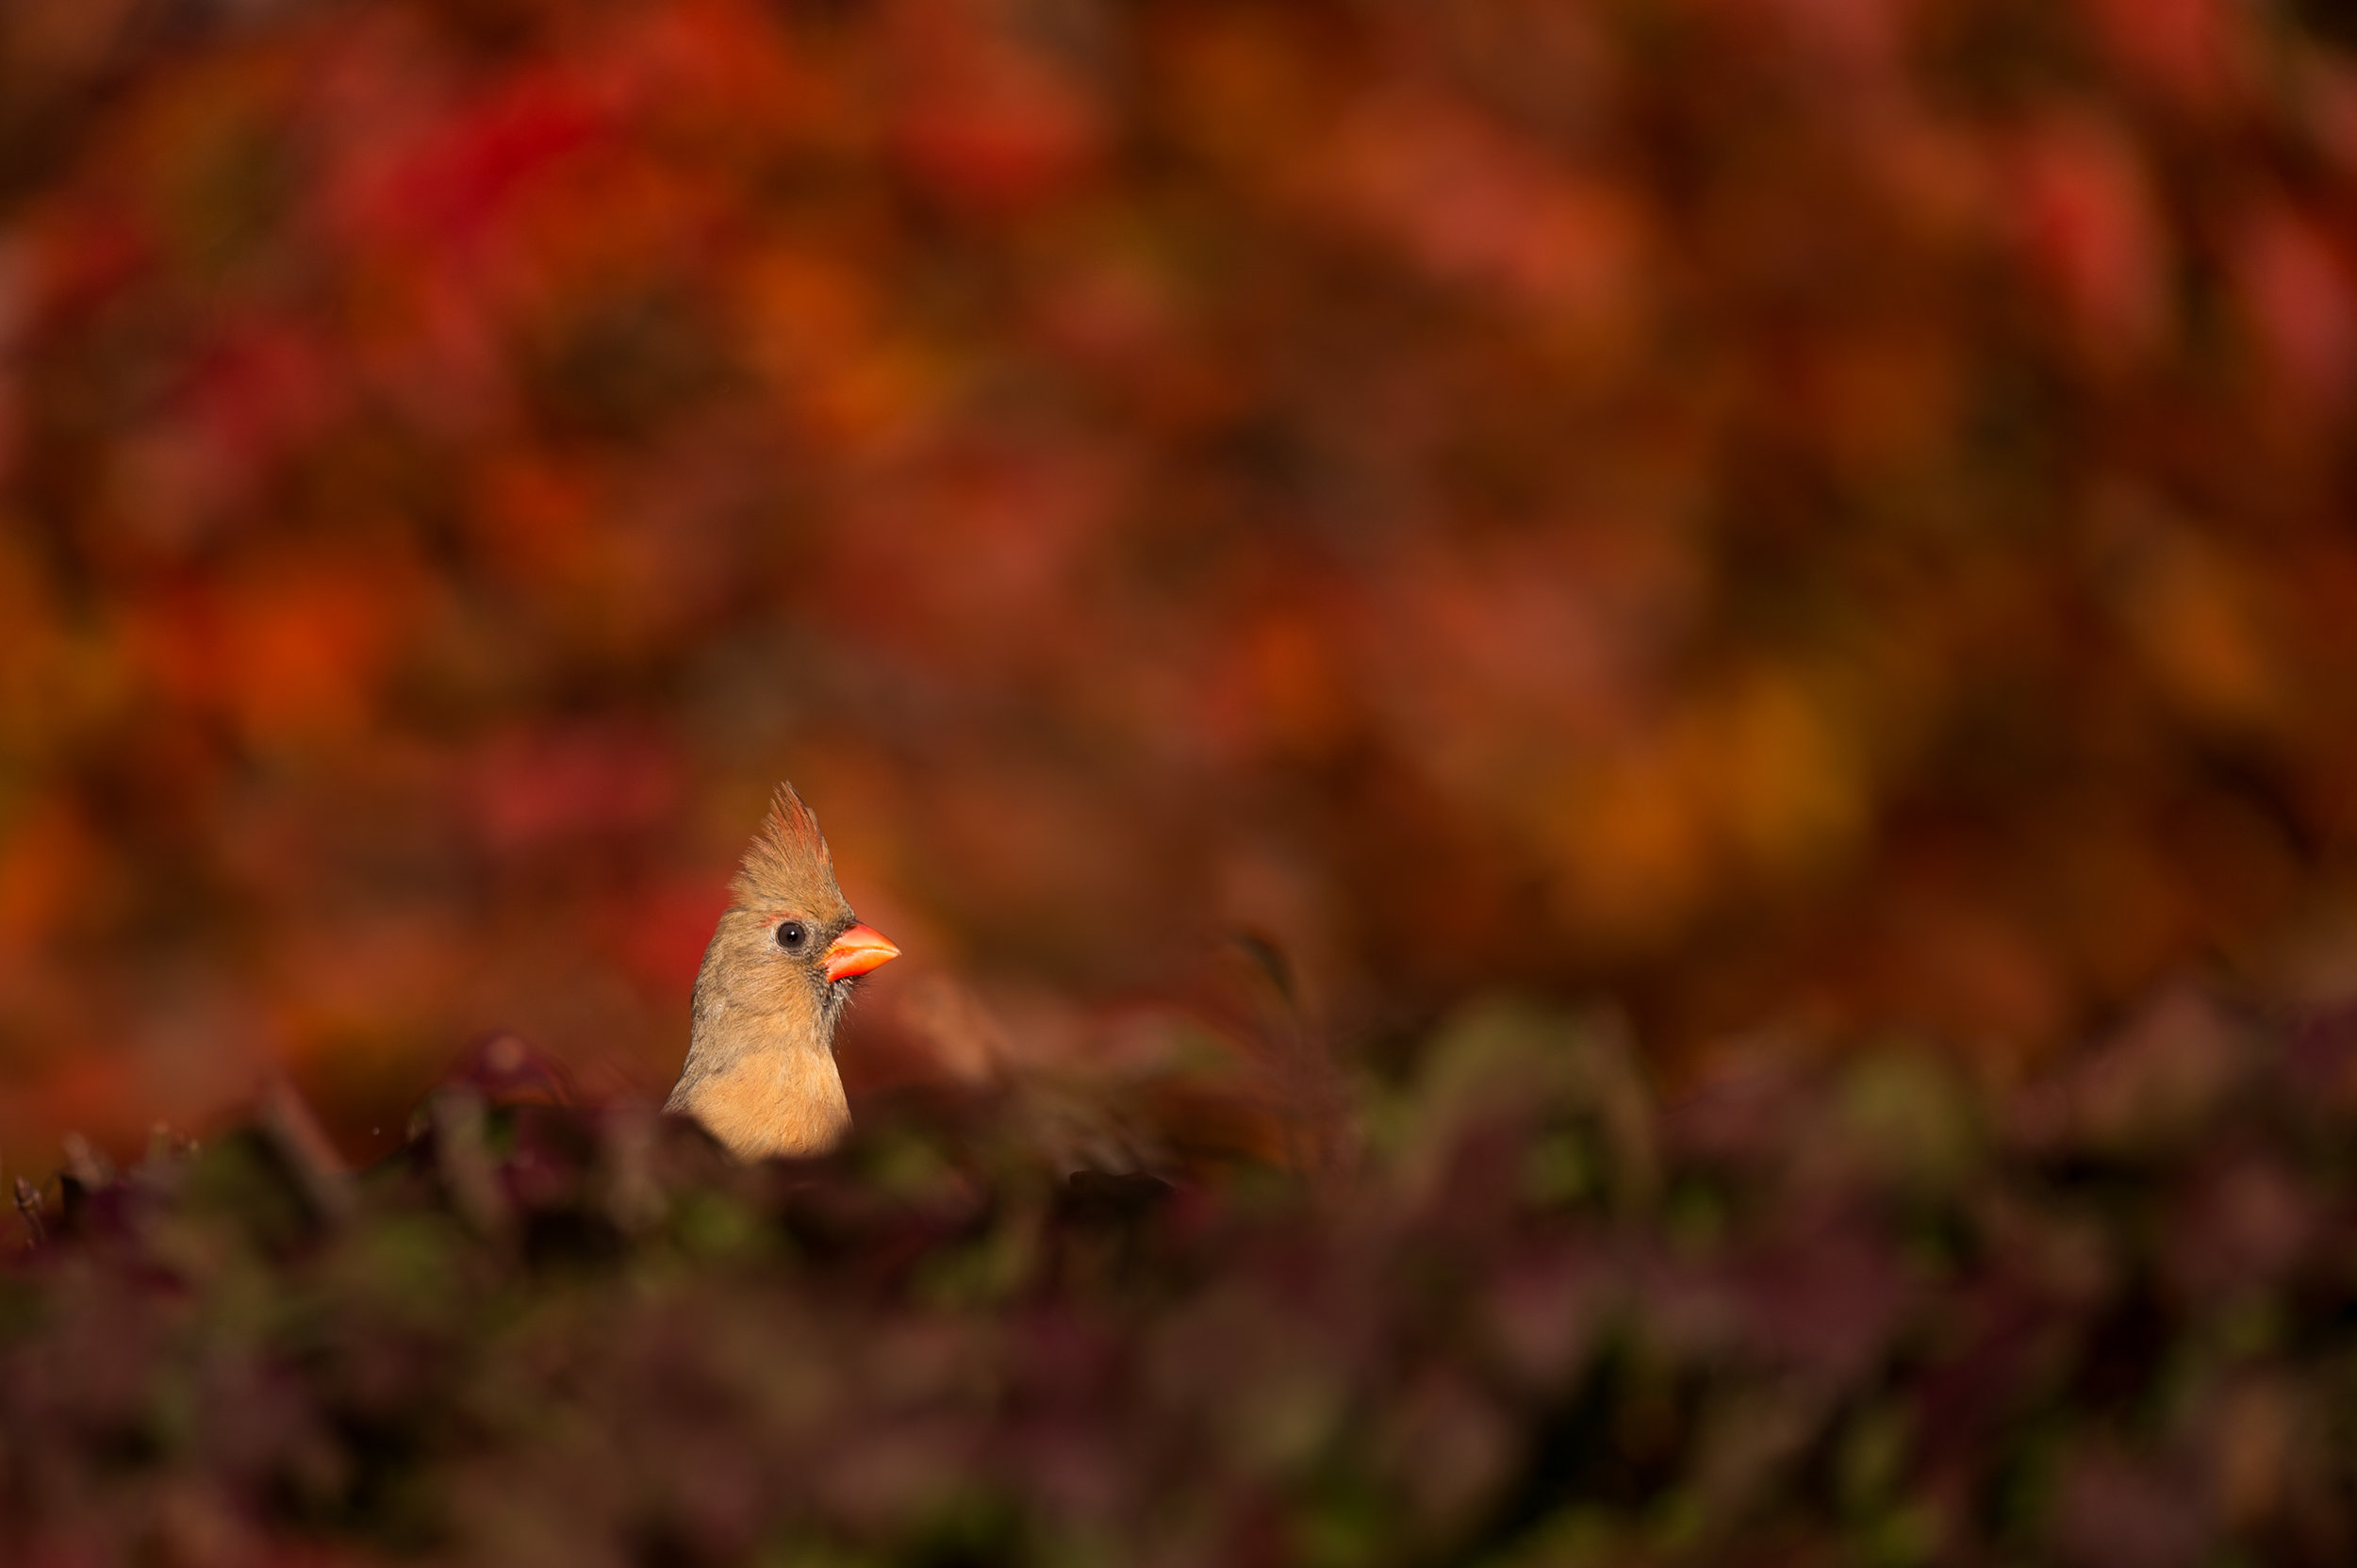 One of the more common backyard birds, a female Northern Cardinal peeks out from within a colorful bush.